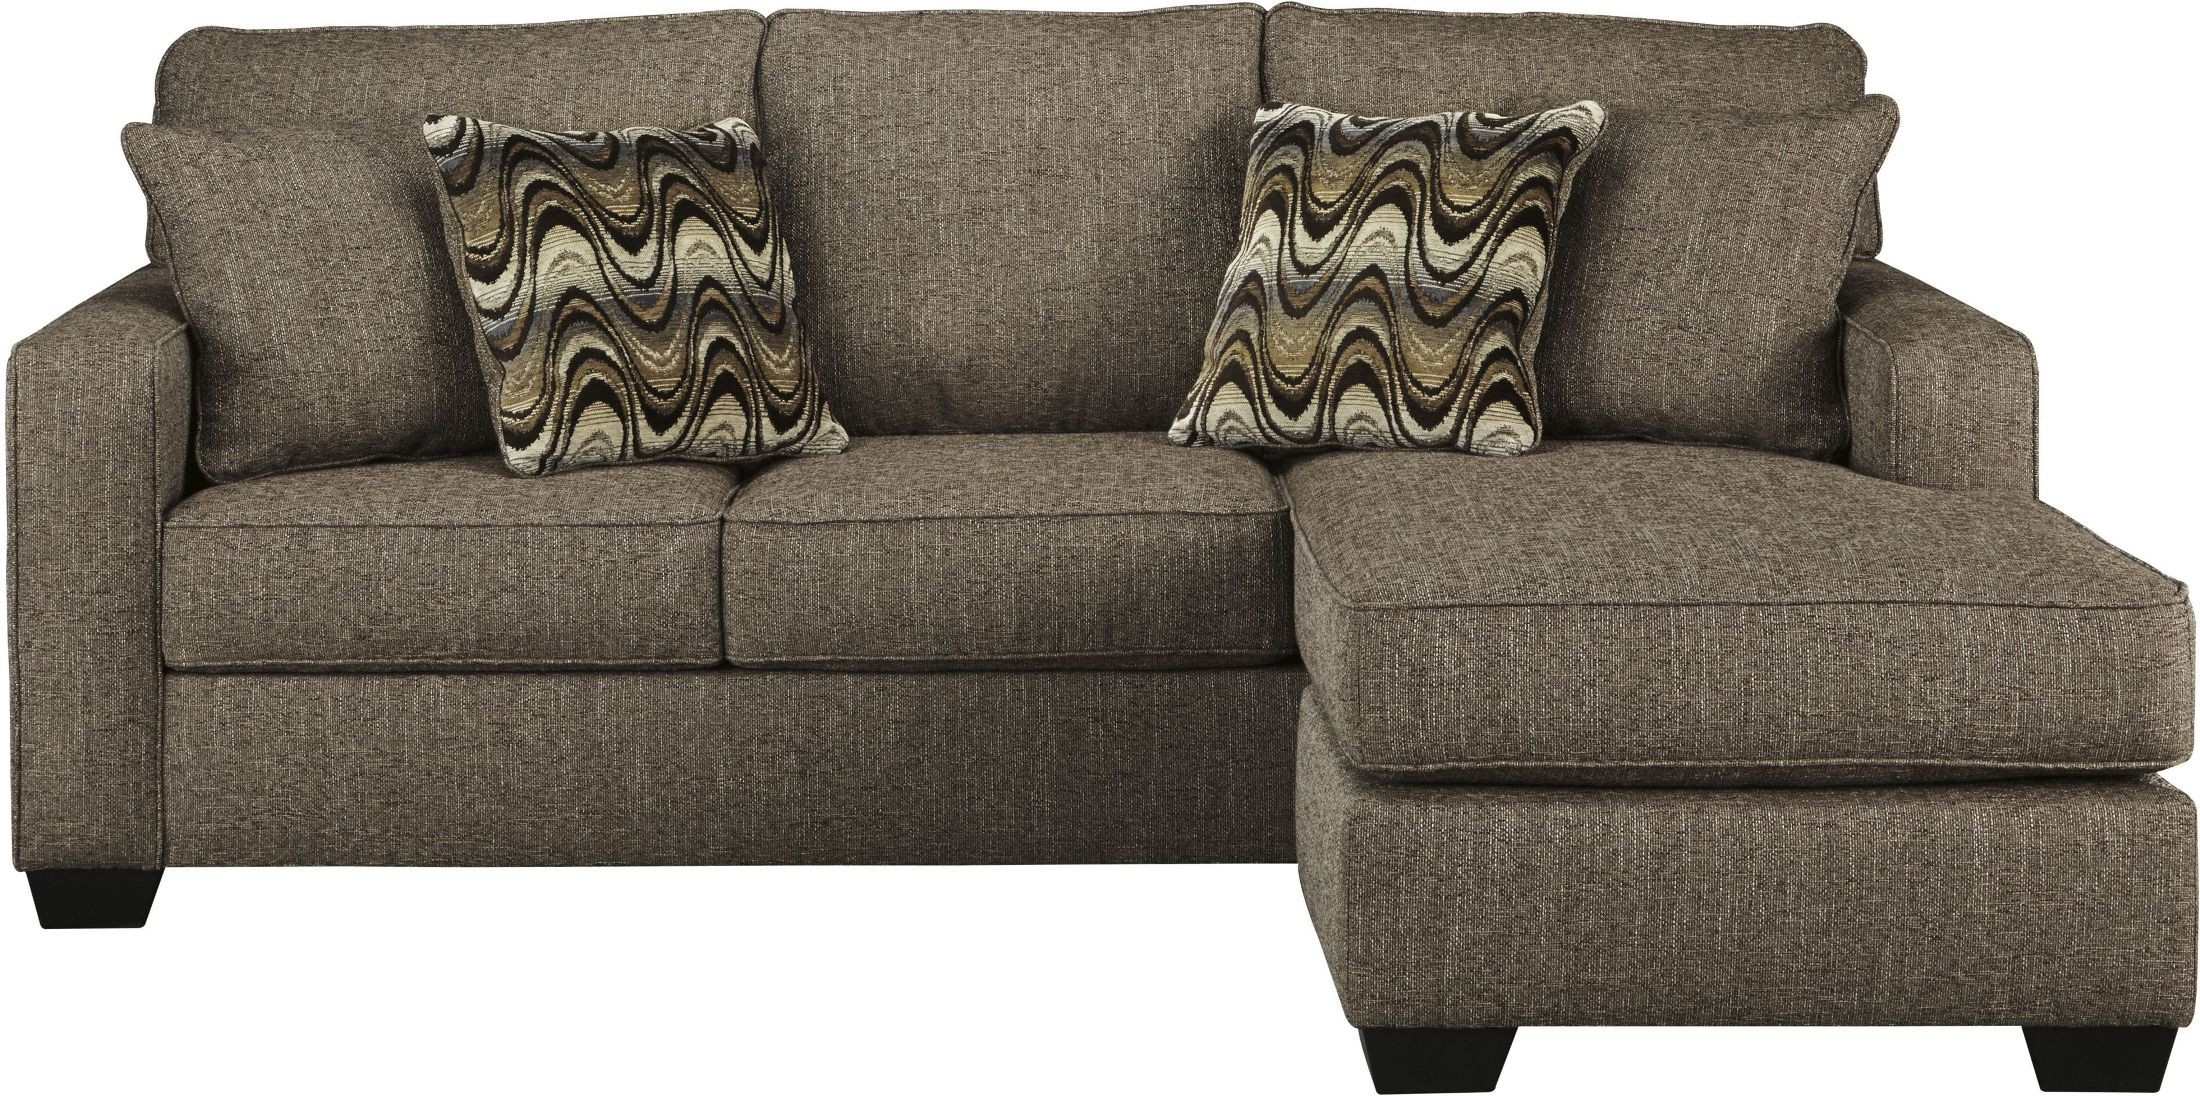 Tanacra Tweed Sofa Chaise 1460218 Ashley